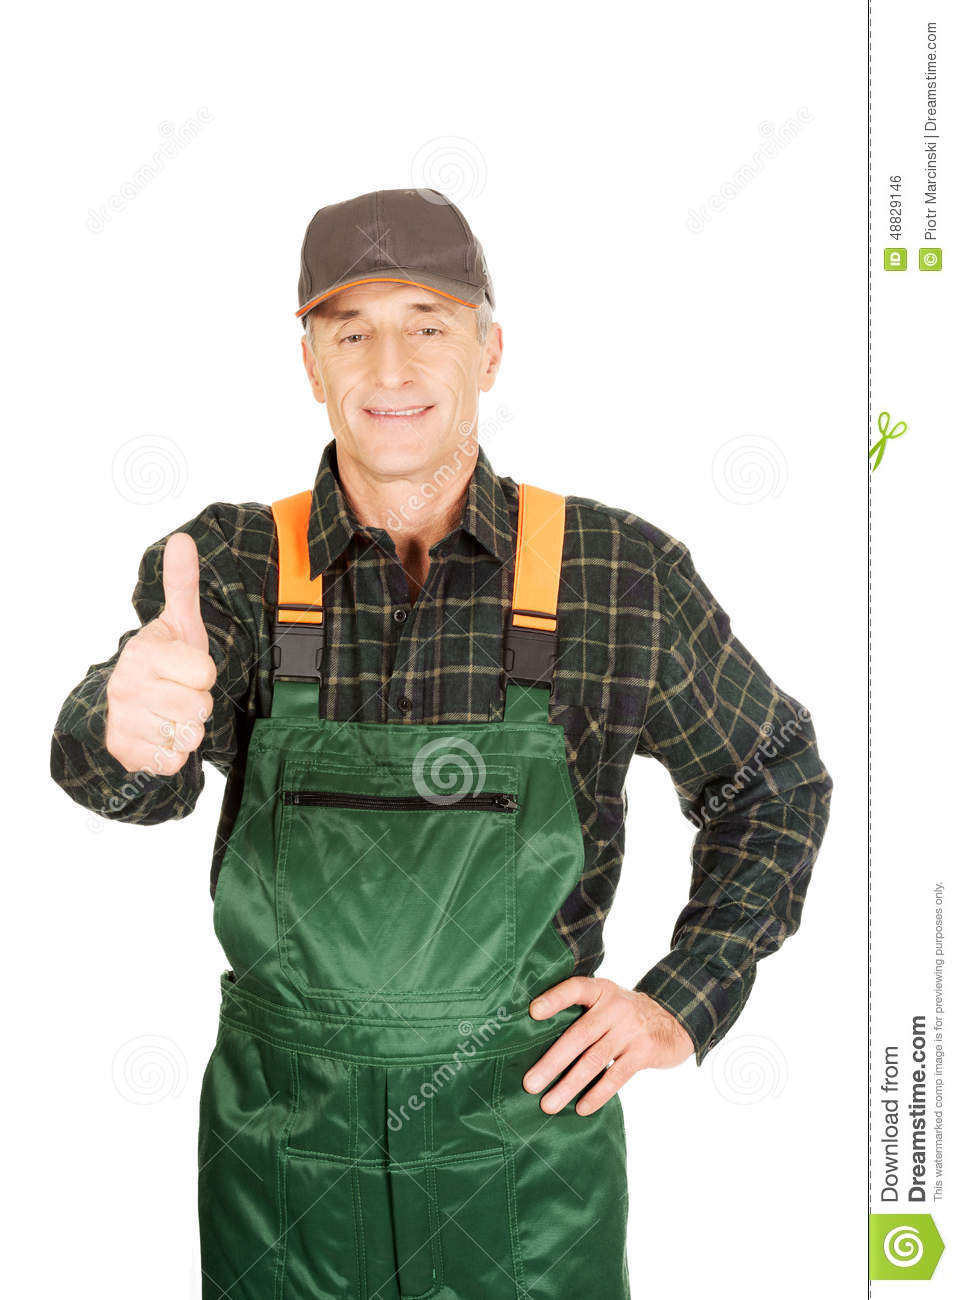 mature gardener in uniform with thumbs up stock photo - image of